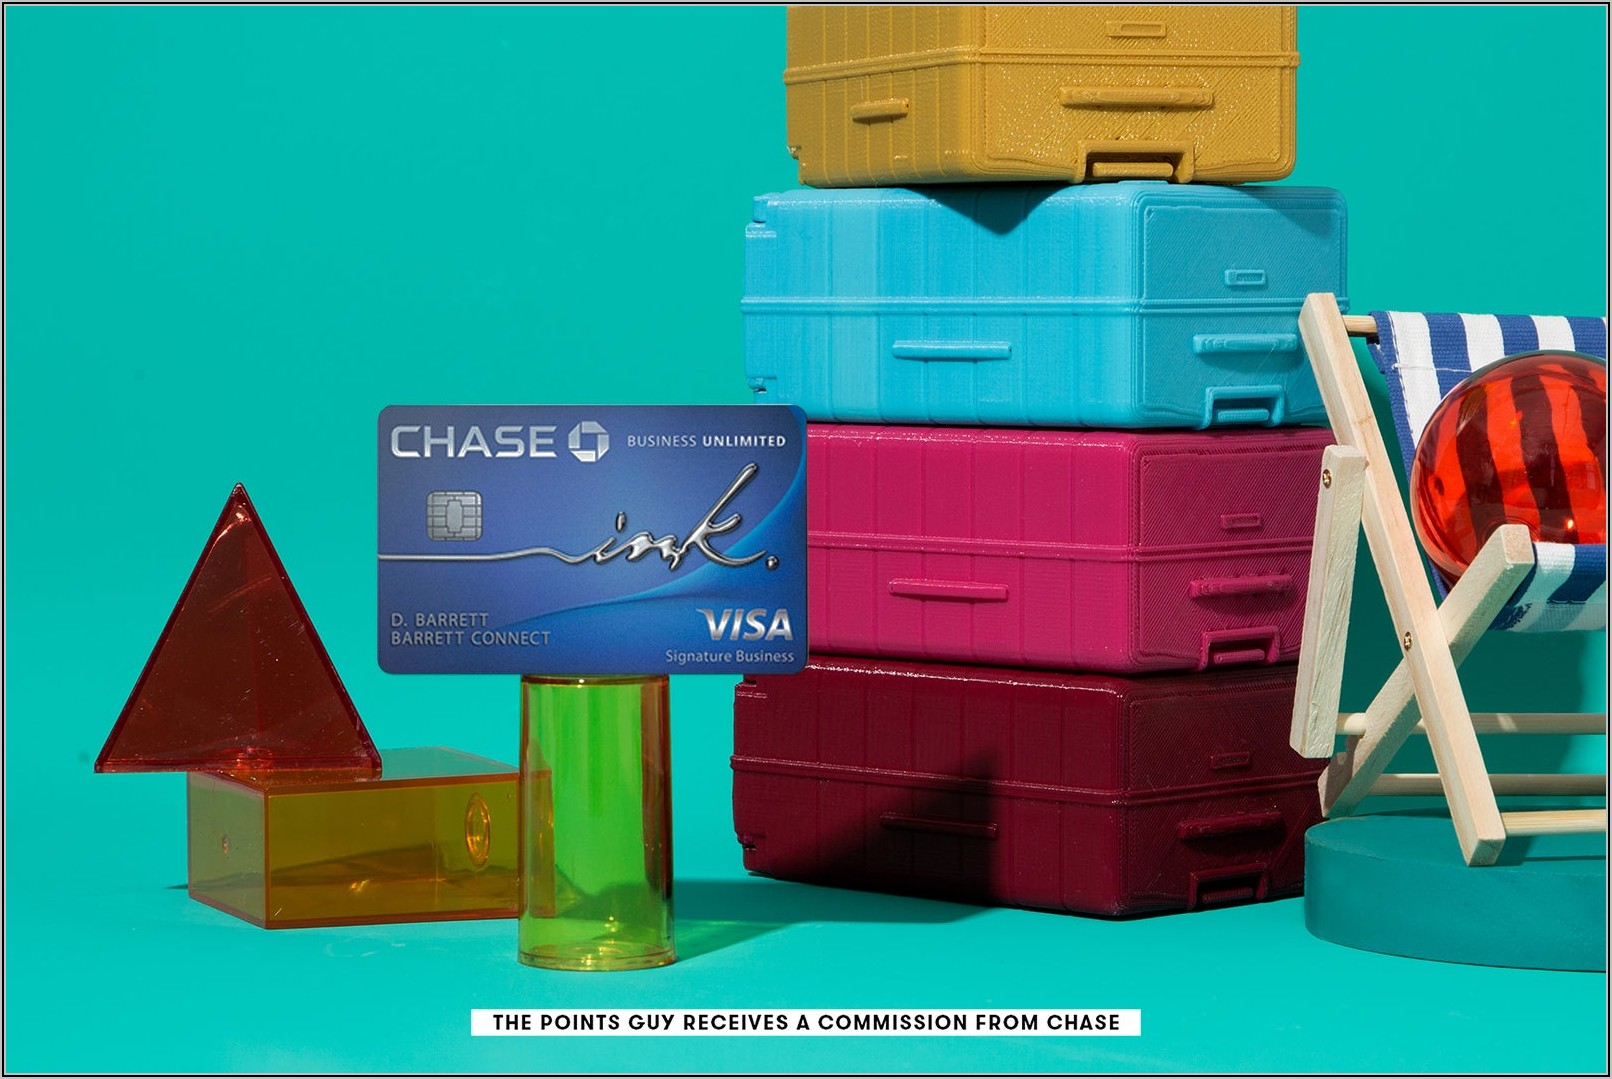 Chase Ink Business Card Benefits